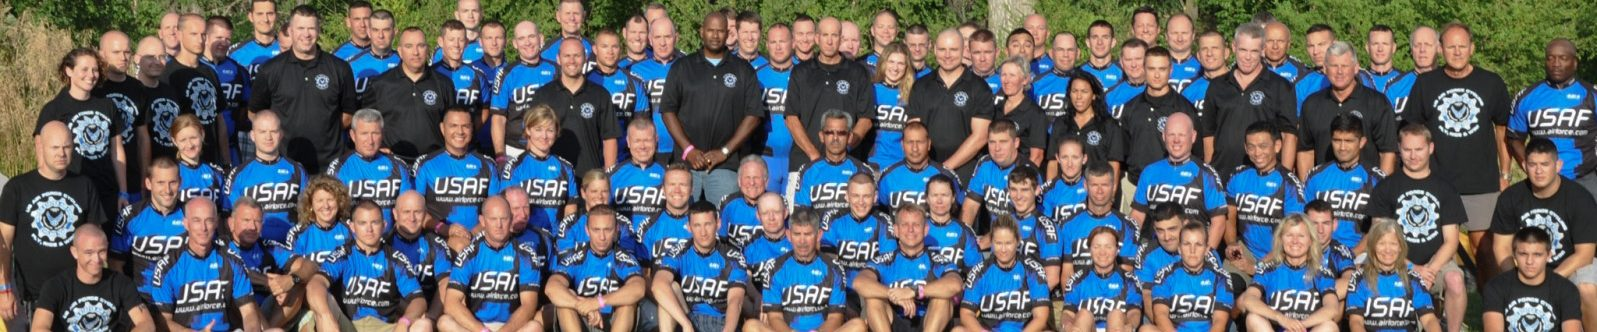 Join The Team! – US Air Force Cycling Team 06be1a574